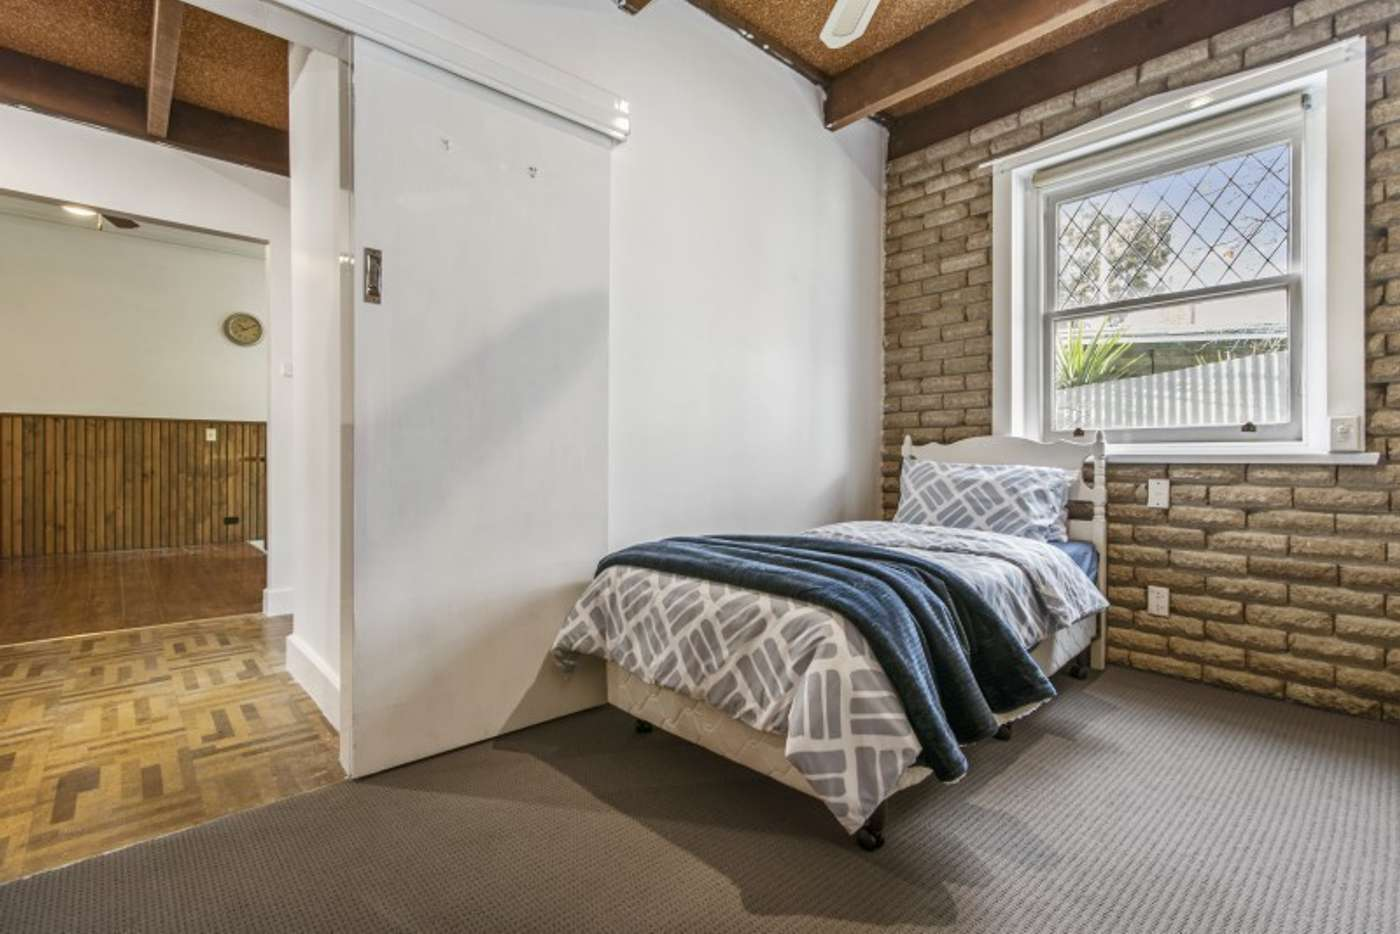 Seventh view of Homely house listing, 41 Drought Street, Bendigo VIC 3550